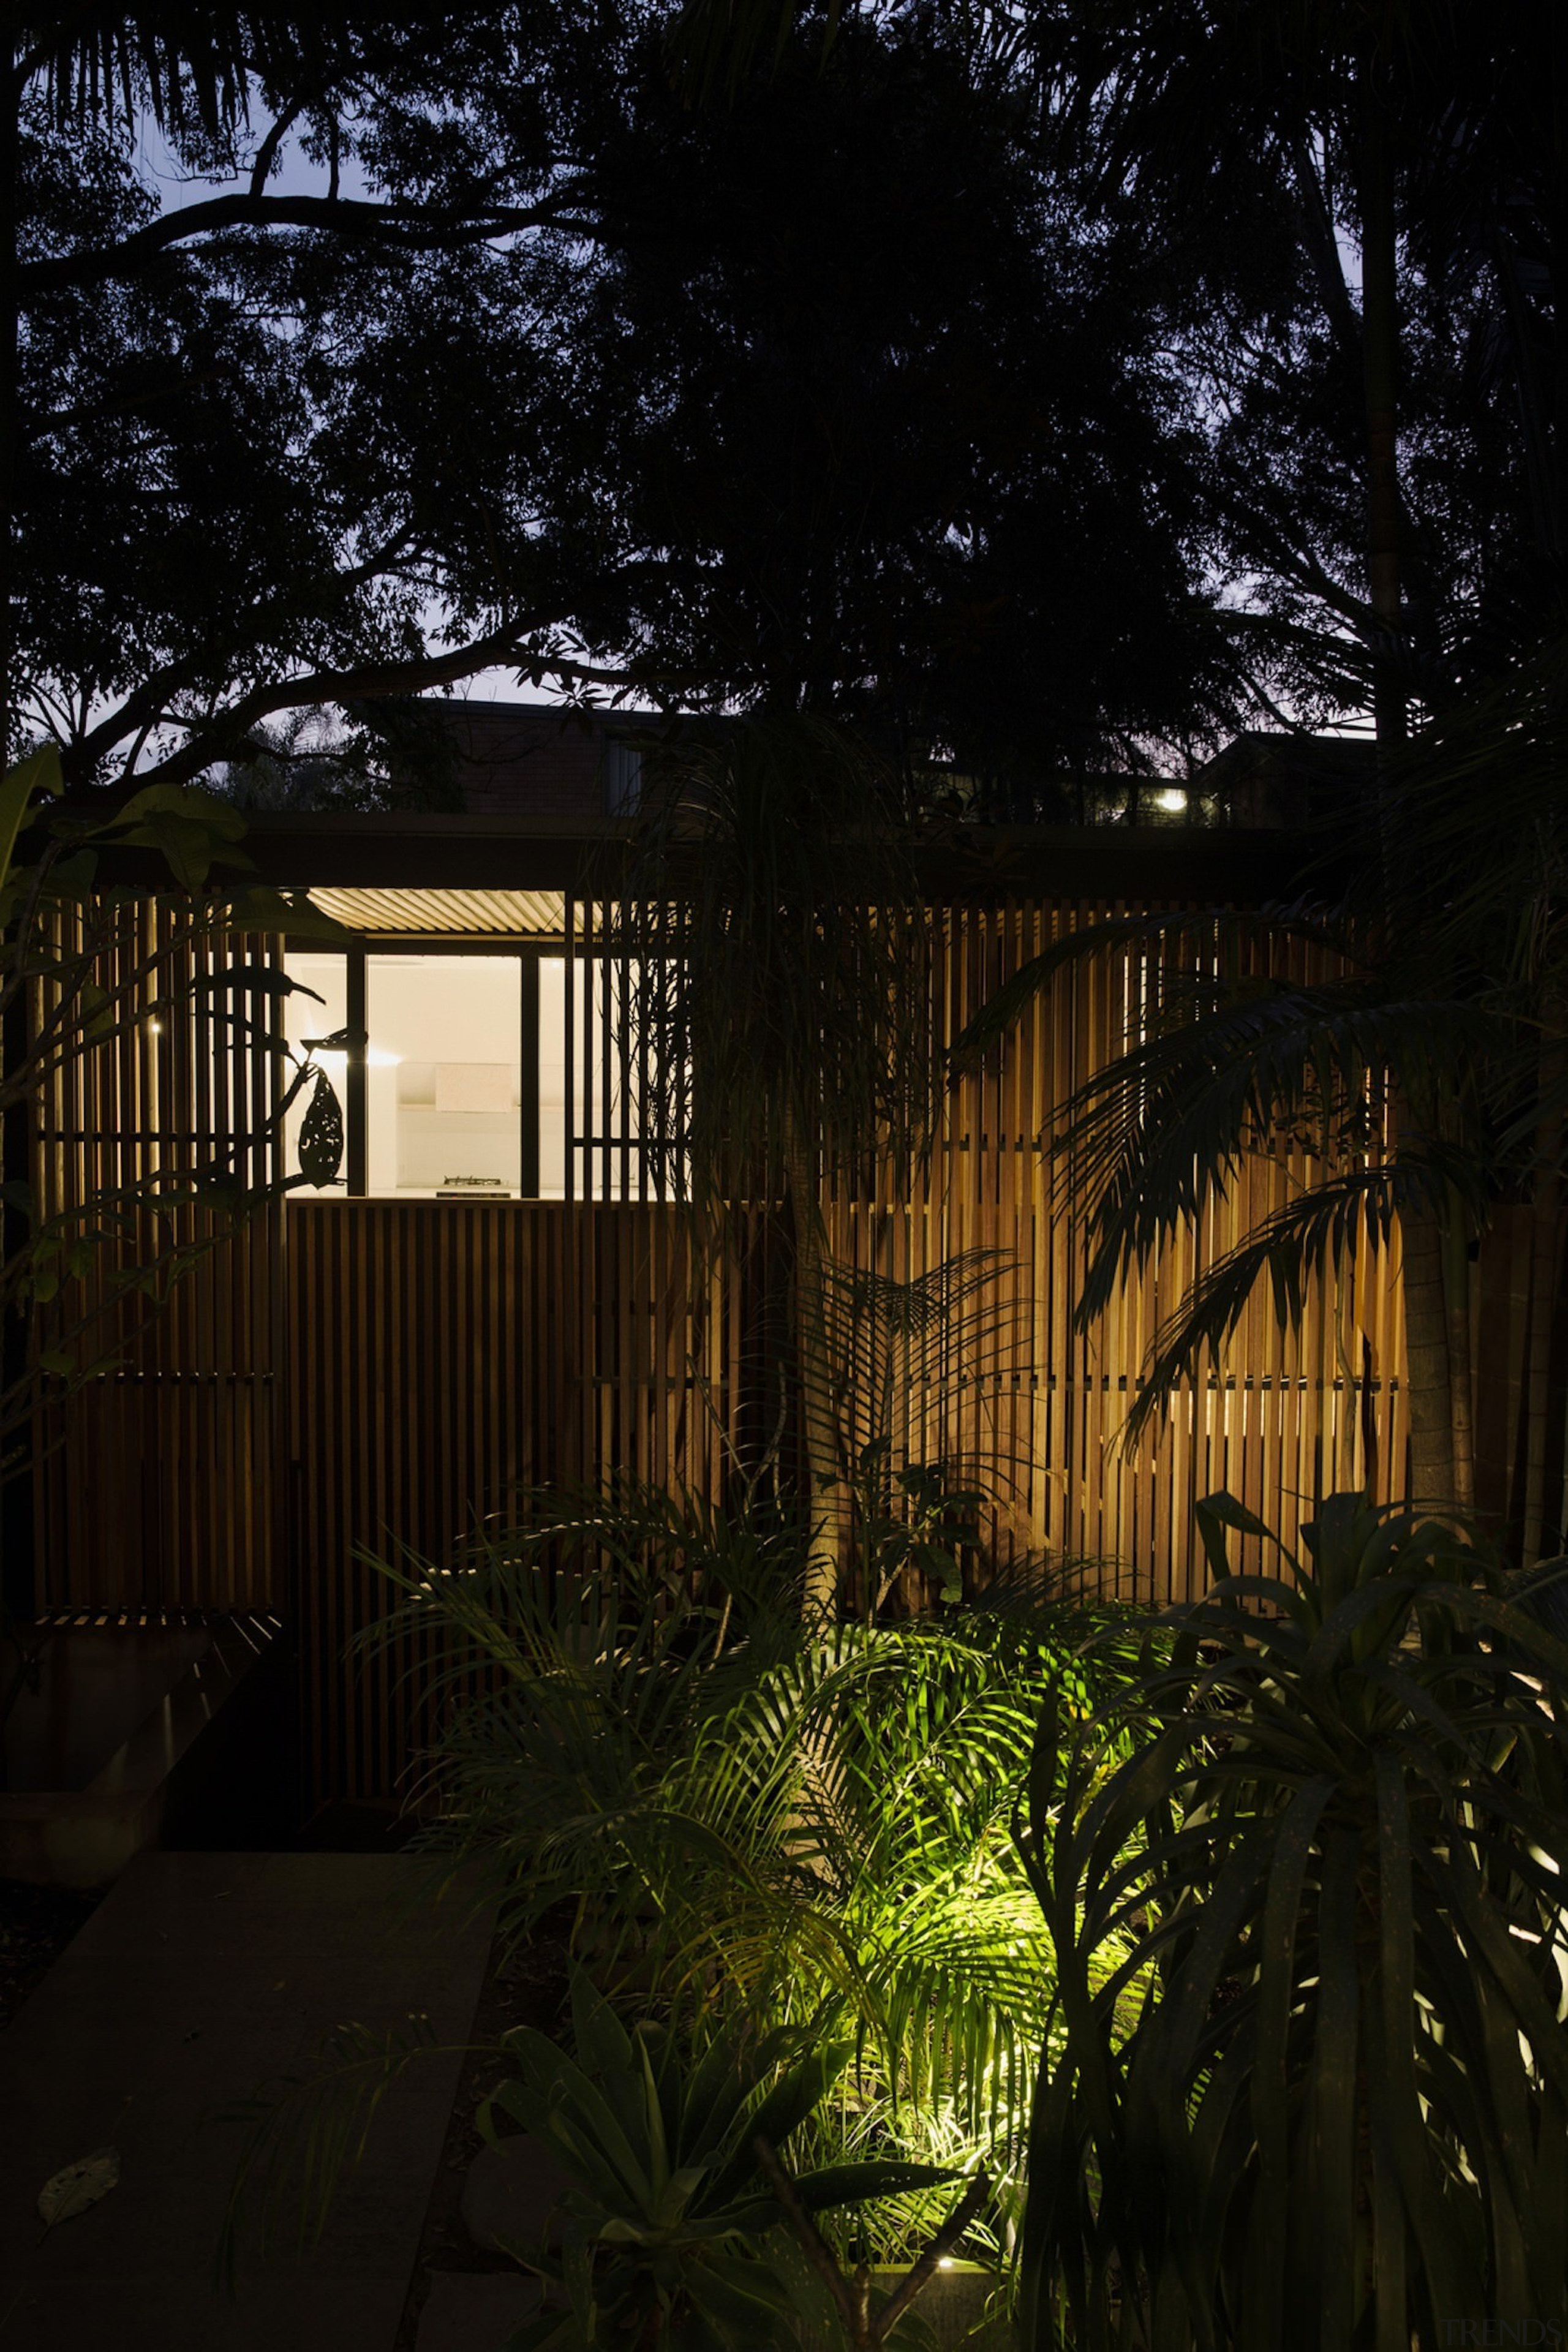 Architect: Architect PrineasPhotography by Chris Warnes architecture, arecales, cottage, evening, facade, home, house, landscape lighting, leaf, light, lighting, night, outdoor structure, plant, real estate, residential area, sunlight, tree, window, wood, black